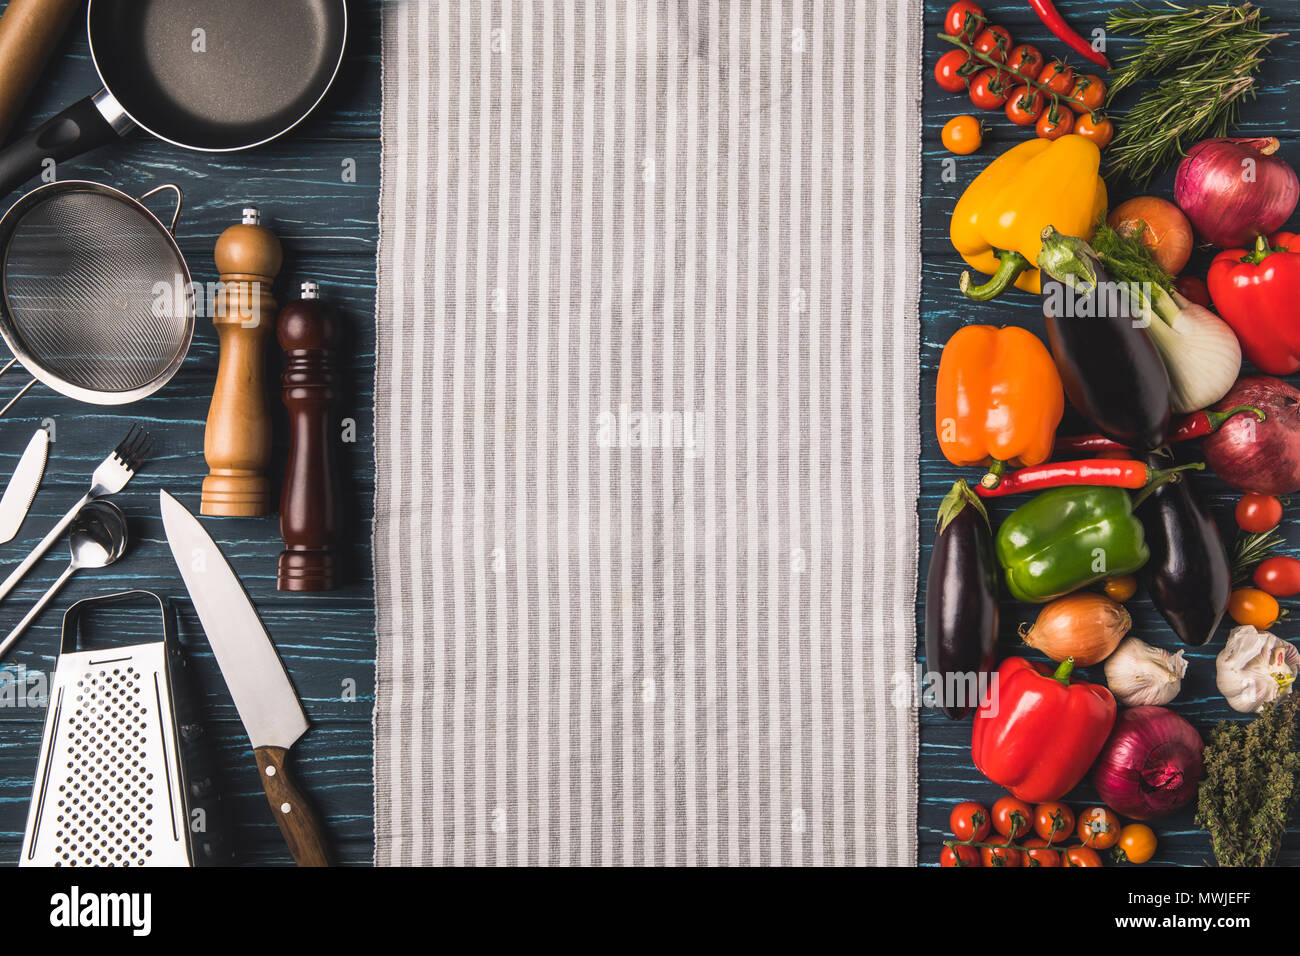 top view of utensil for cooking and vegetables on wooden table - Stock Image